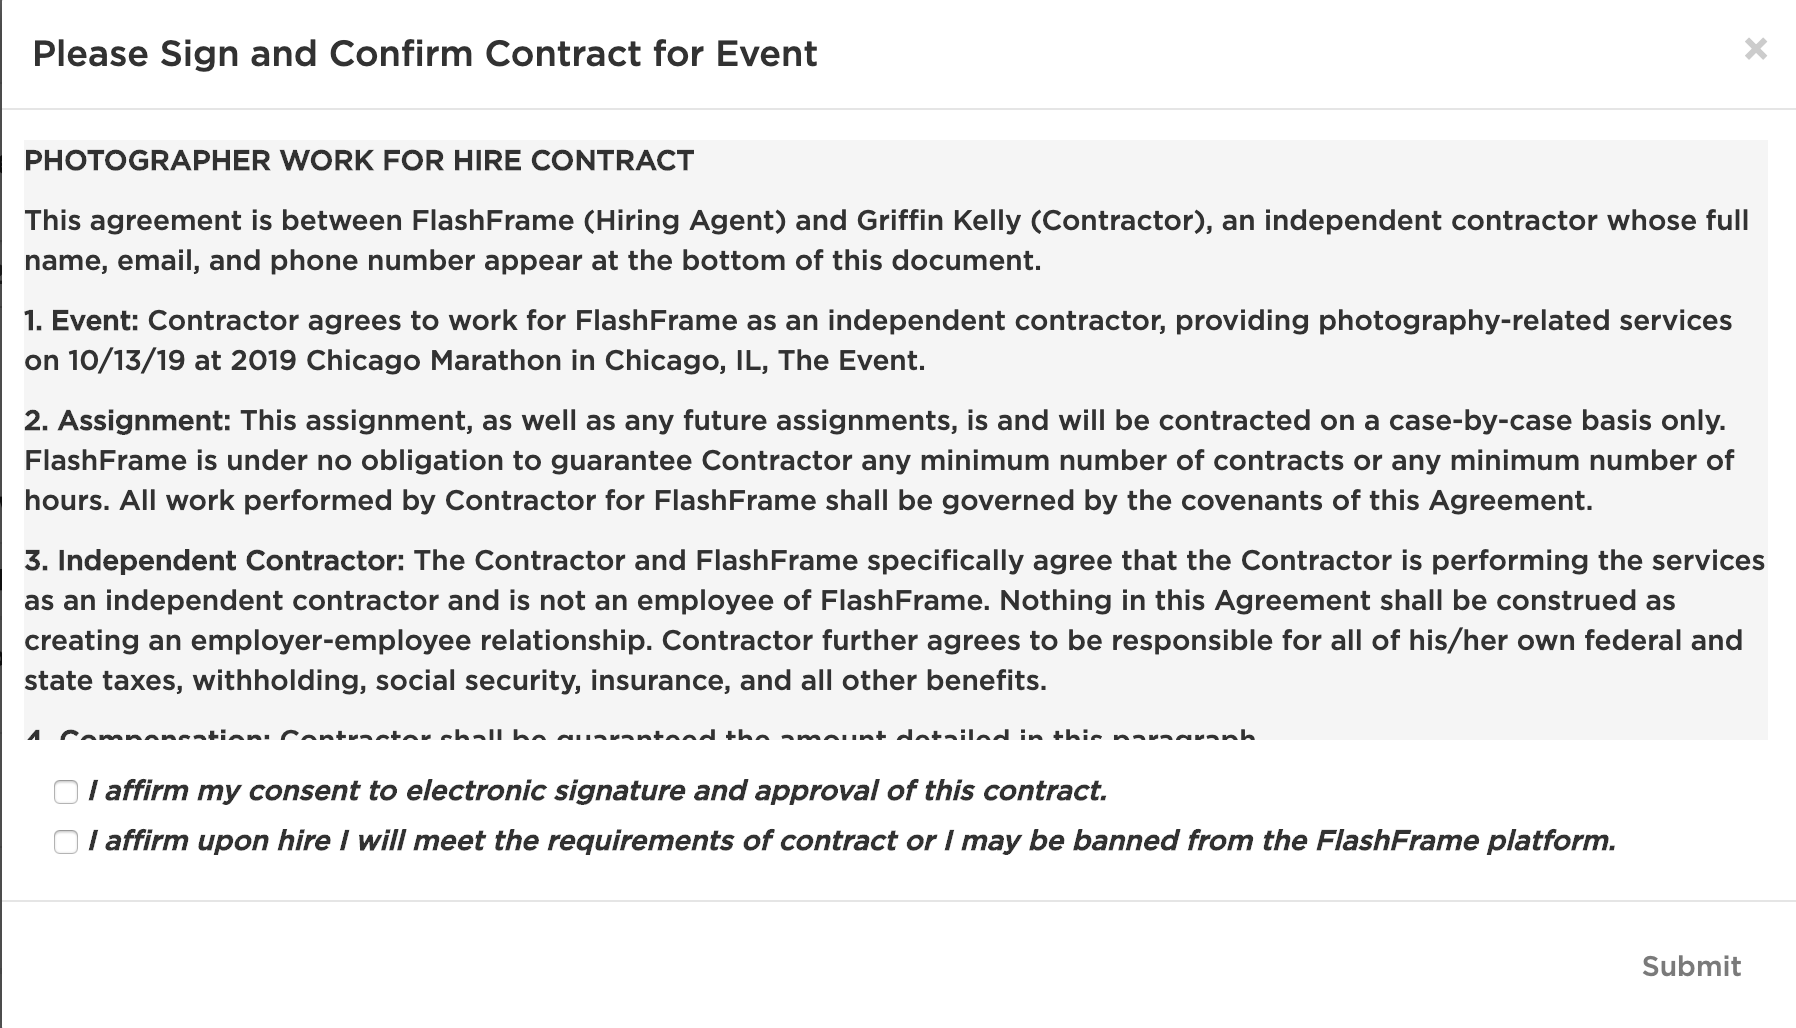 Contract Approval